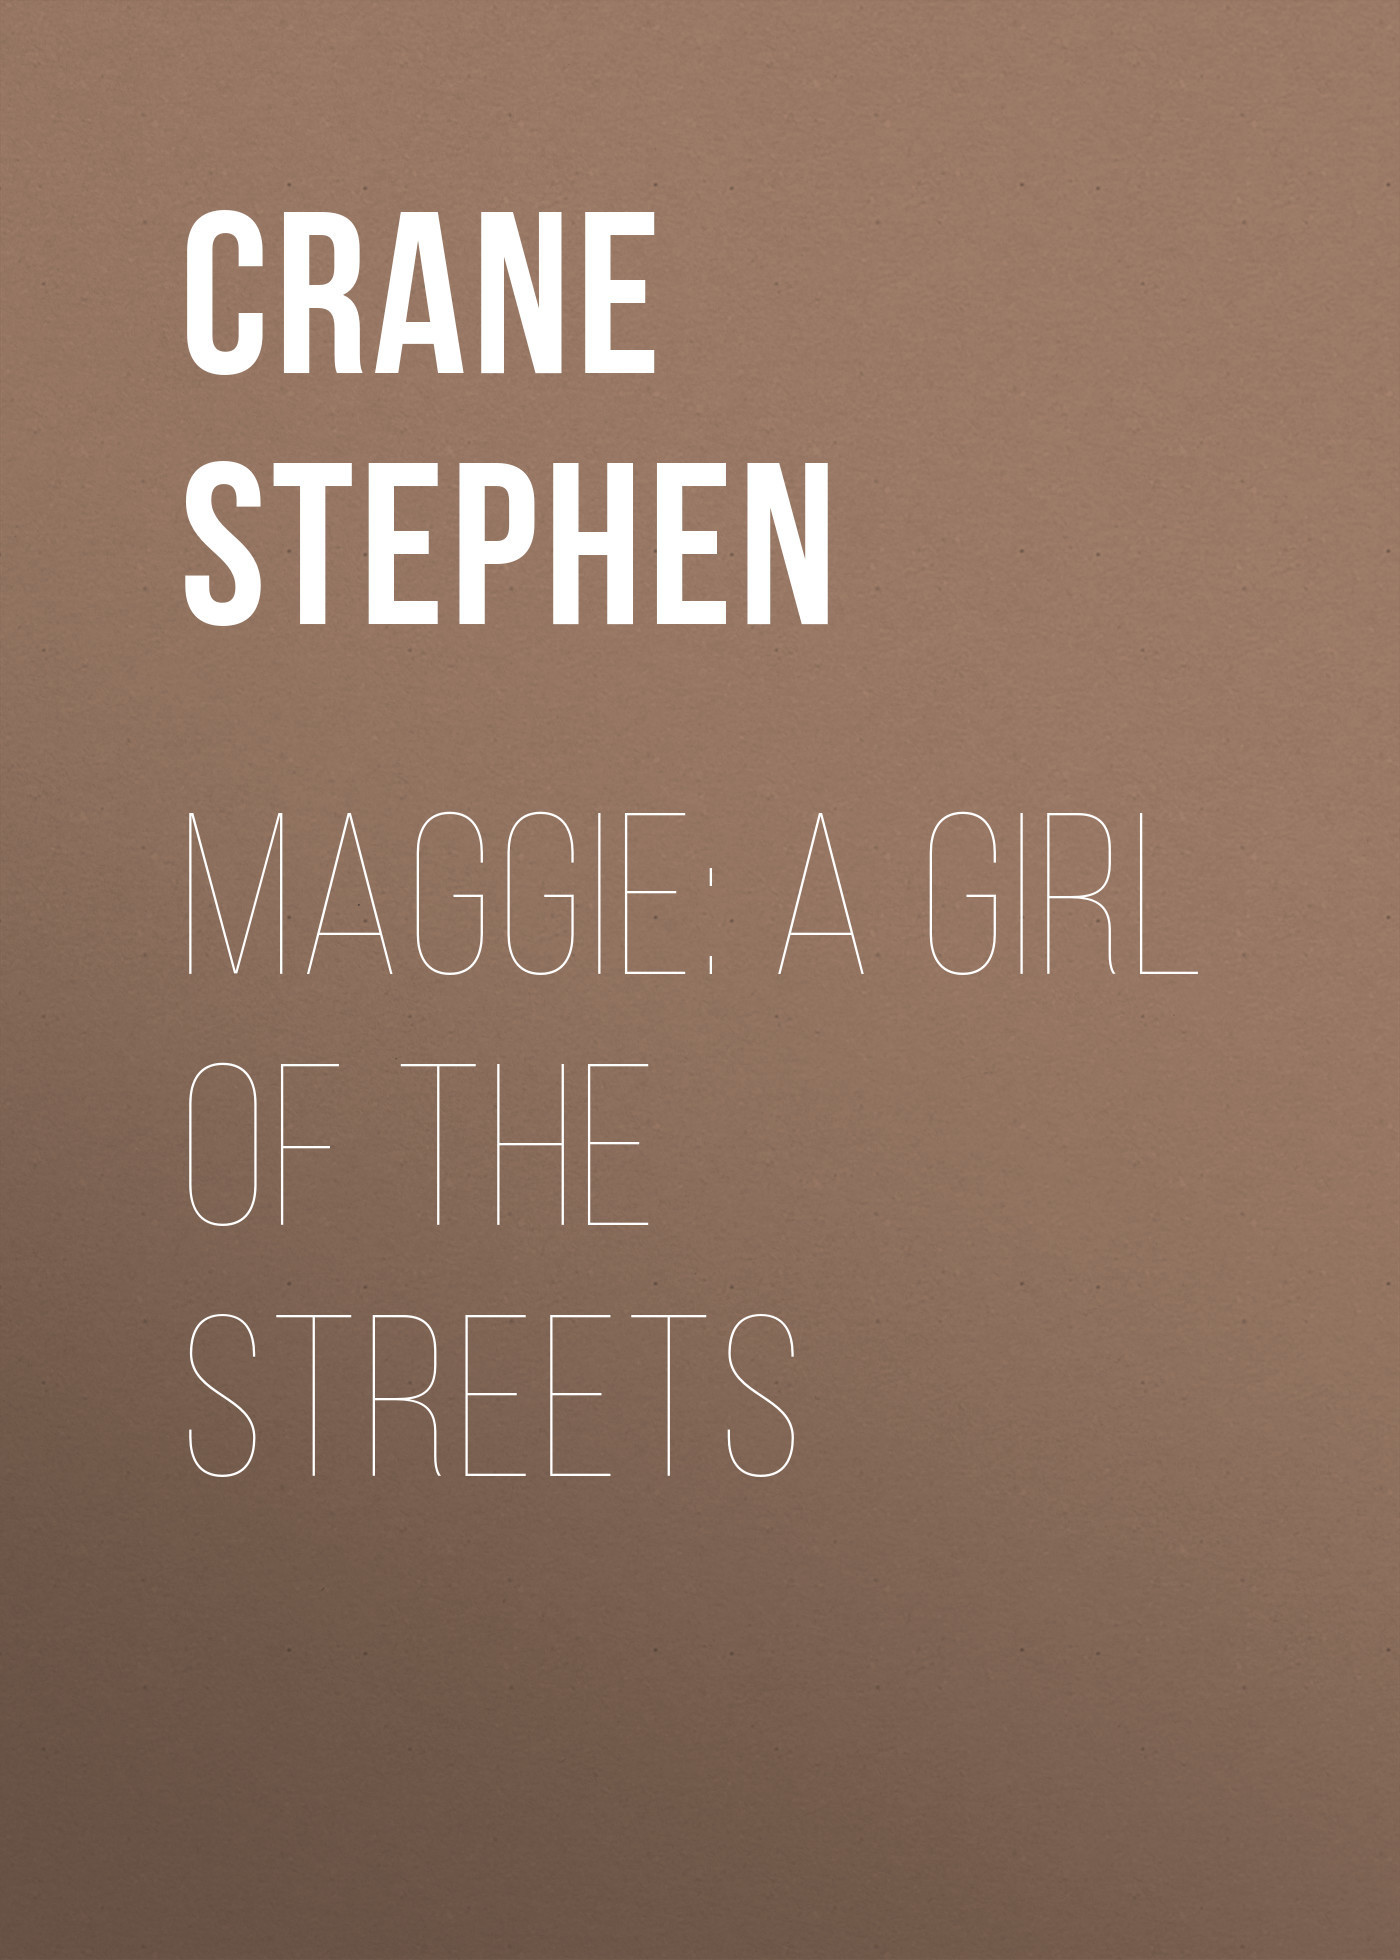 Crane Stephen Maggie: A Girl of the Streets stephen fry the liar